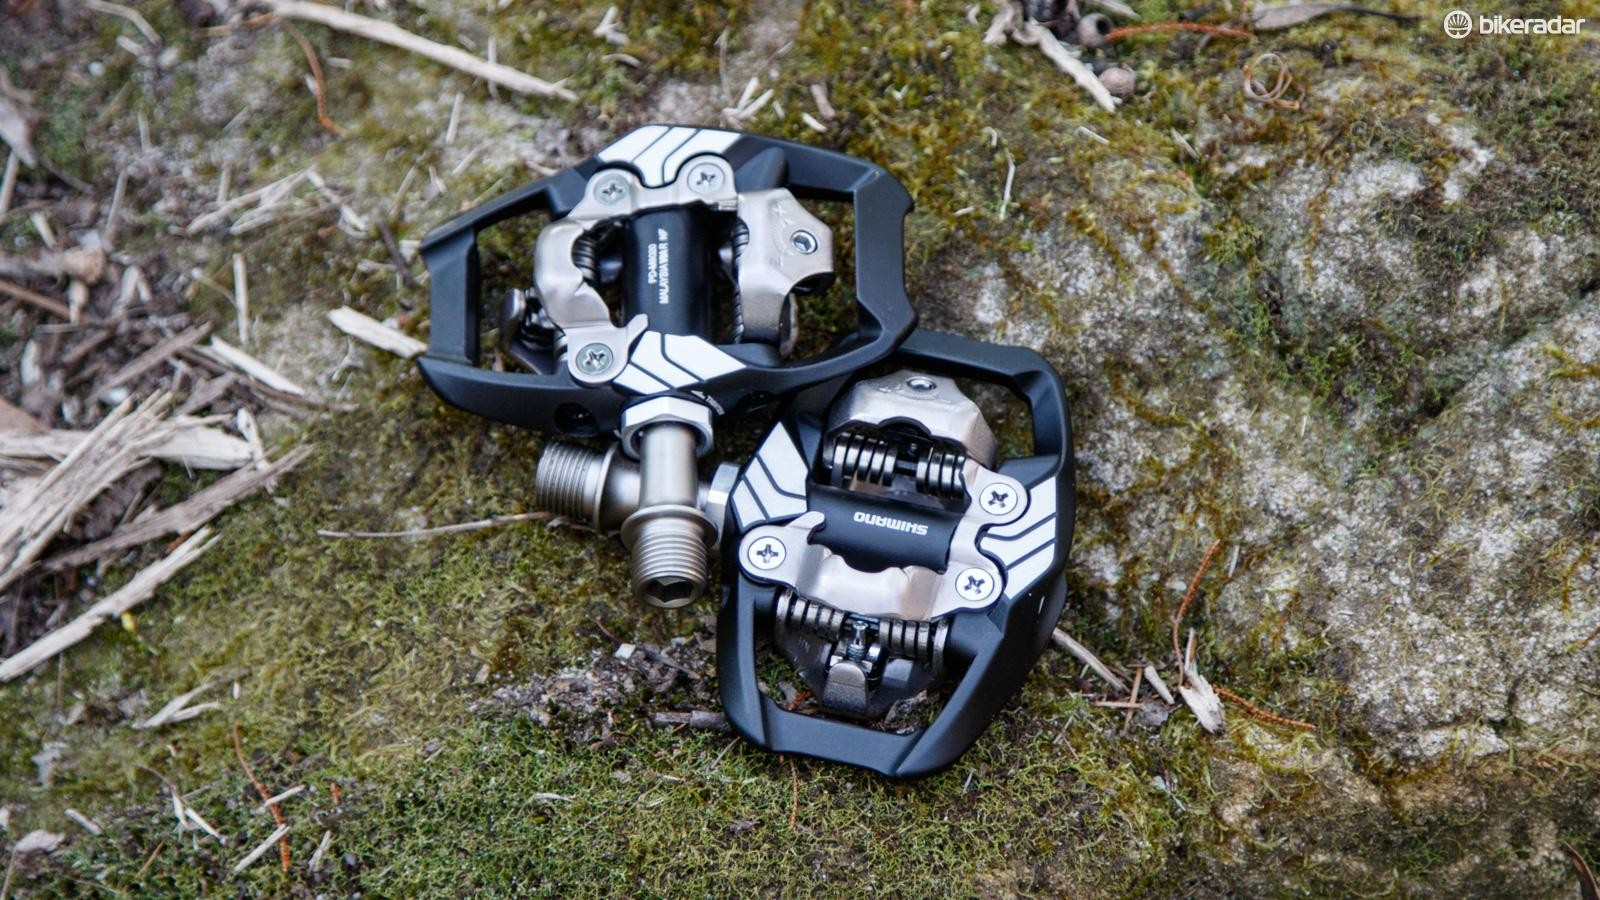 Mountain bike cleat systems like Shimano's XT pedals require two-bolt SPD cleats